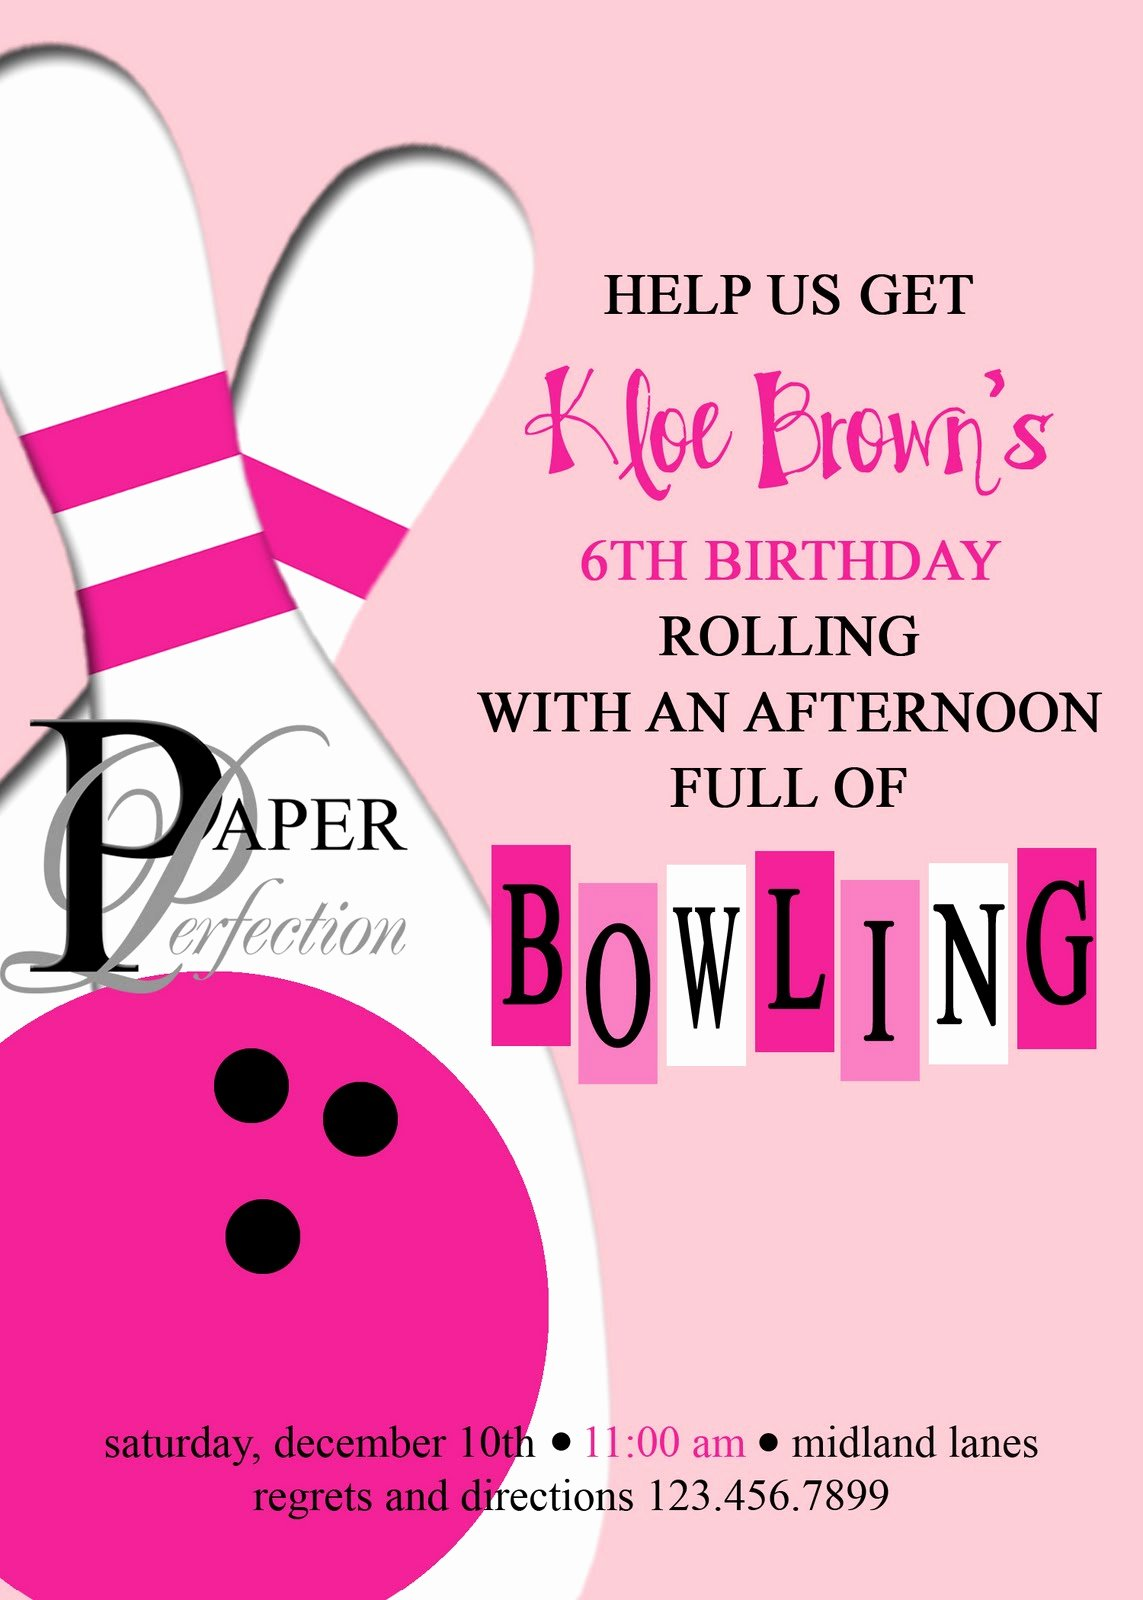 Printable Bowling Party Invitations Beautiful Paper Perfection Pink Bowling Party Invite and Printables